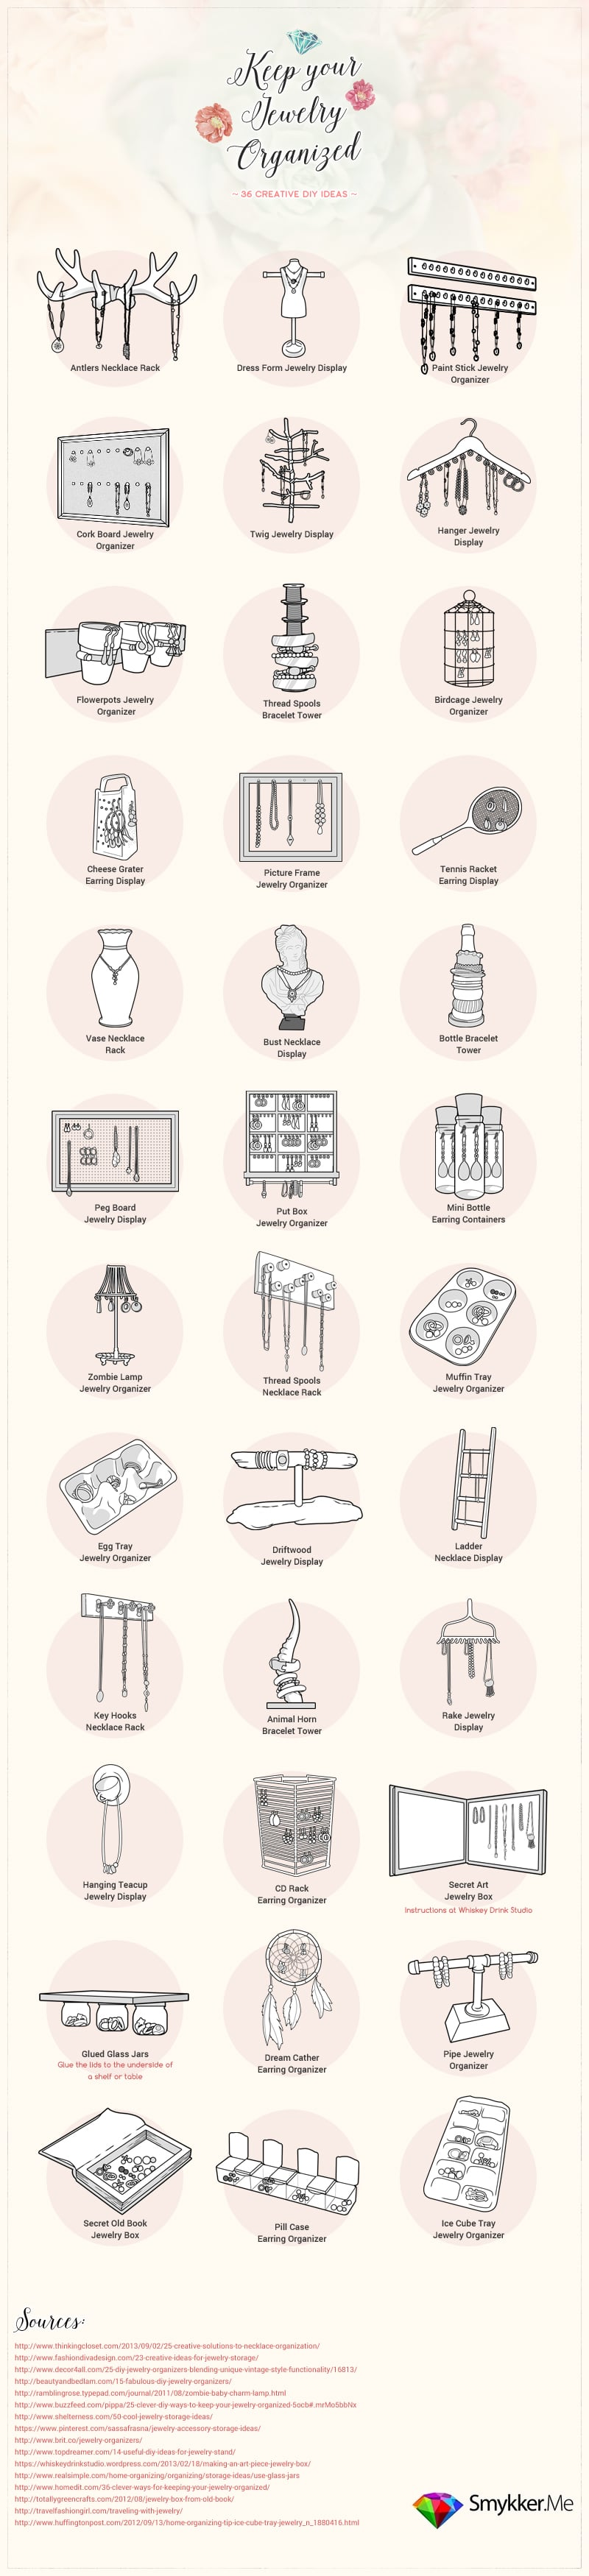 25 brilliant diy jewelry organizing and storage projects - page 2, Presentation templates